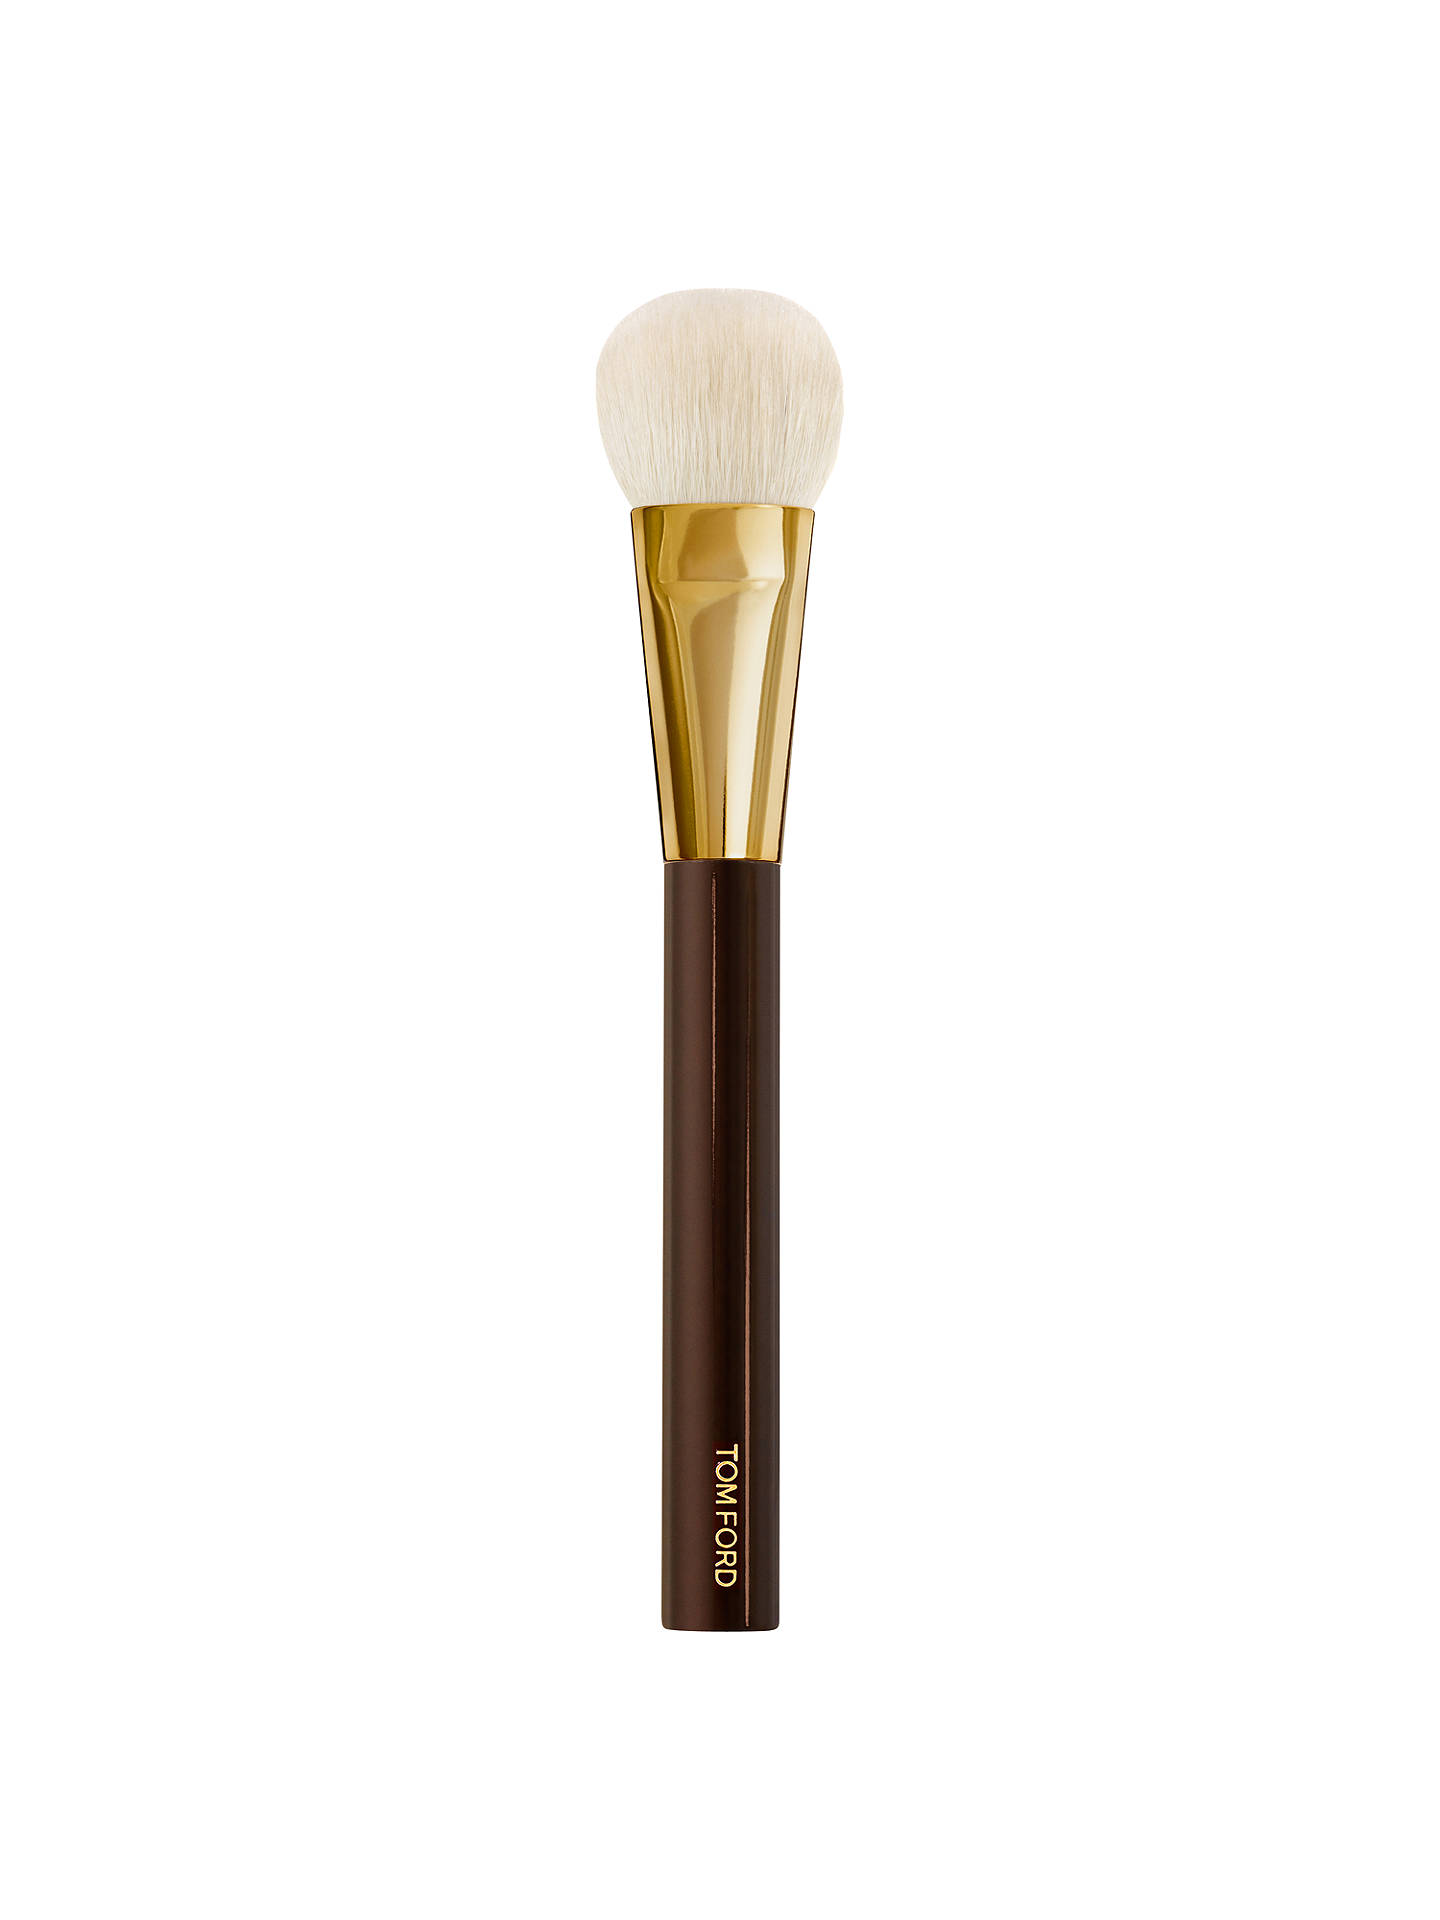 BuyTOM FORD Cream Foundation Brush Online at johnlewis.com